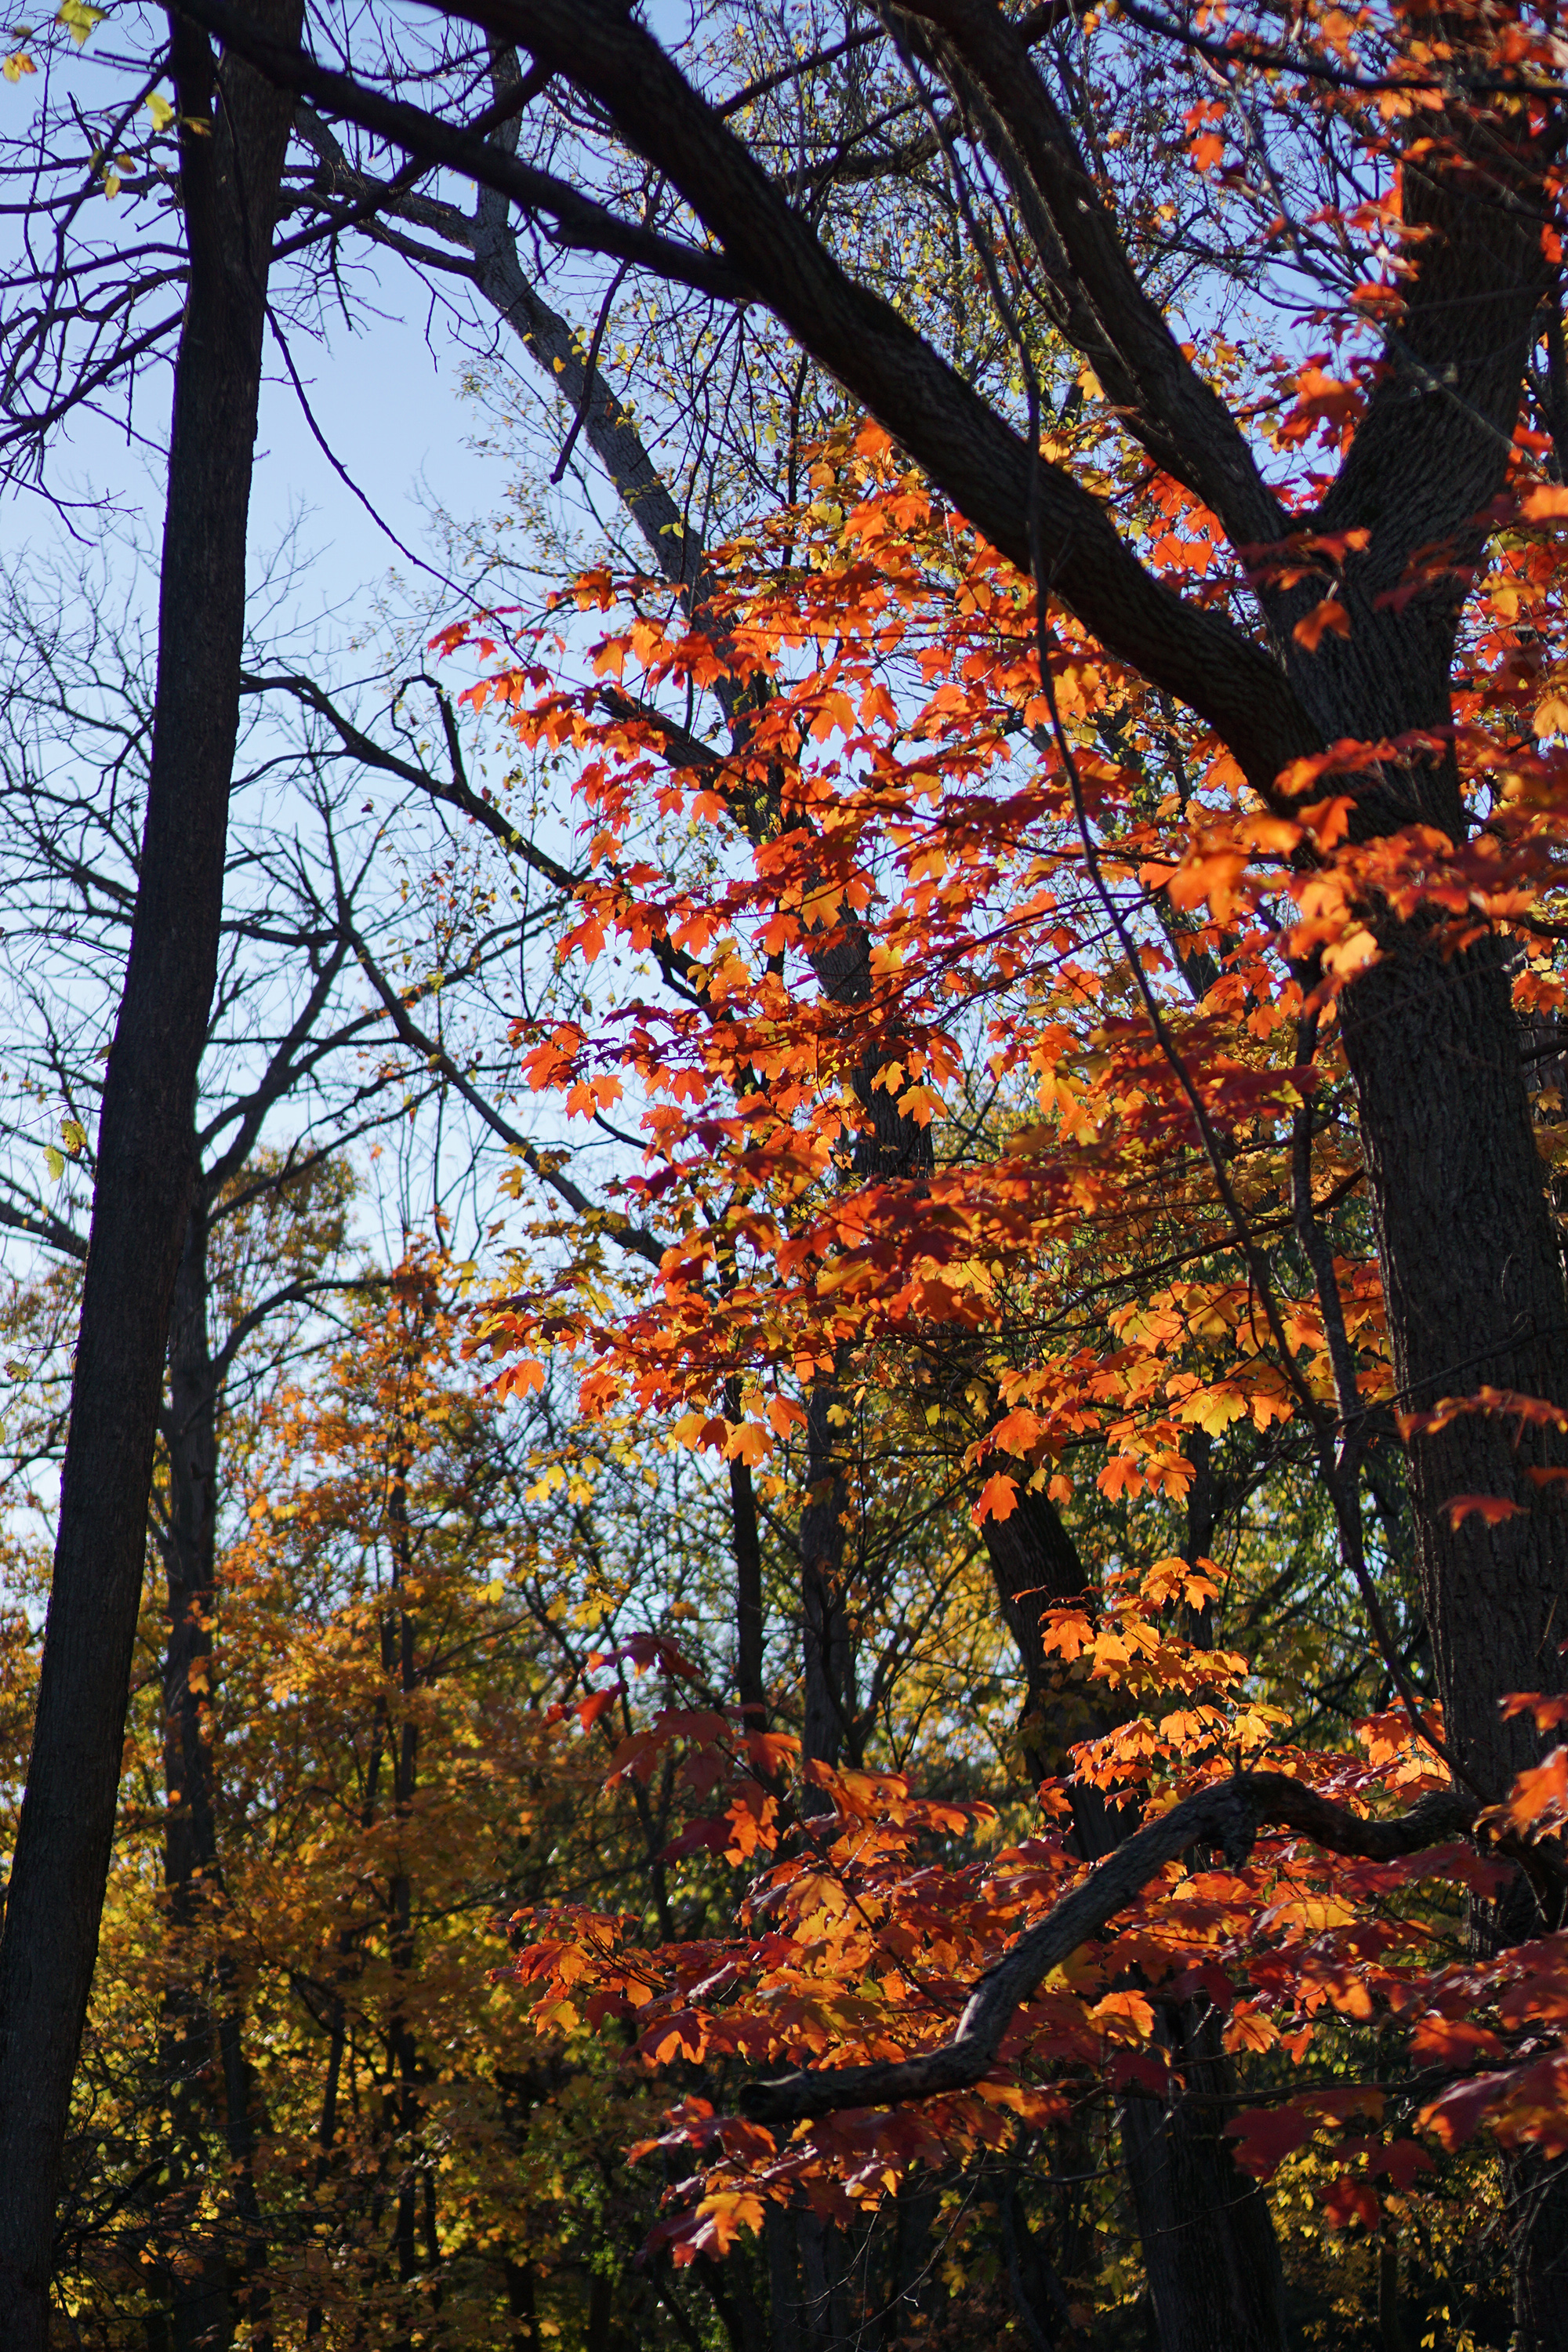 Fall foliage in Miami Woods, Morton Grove Illinois / Darker than Green